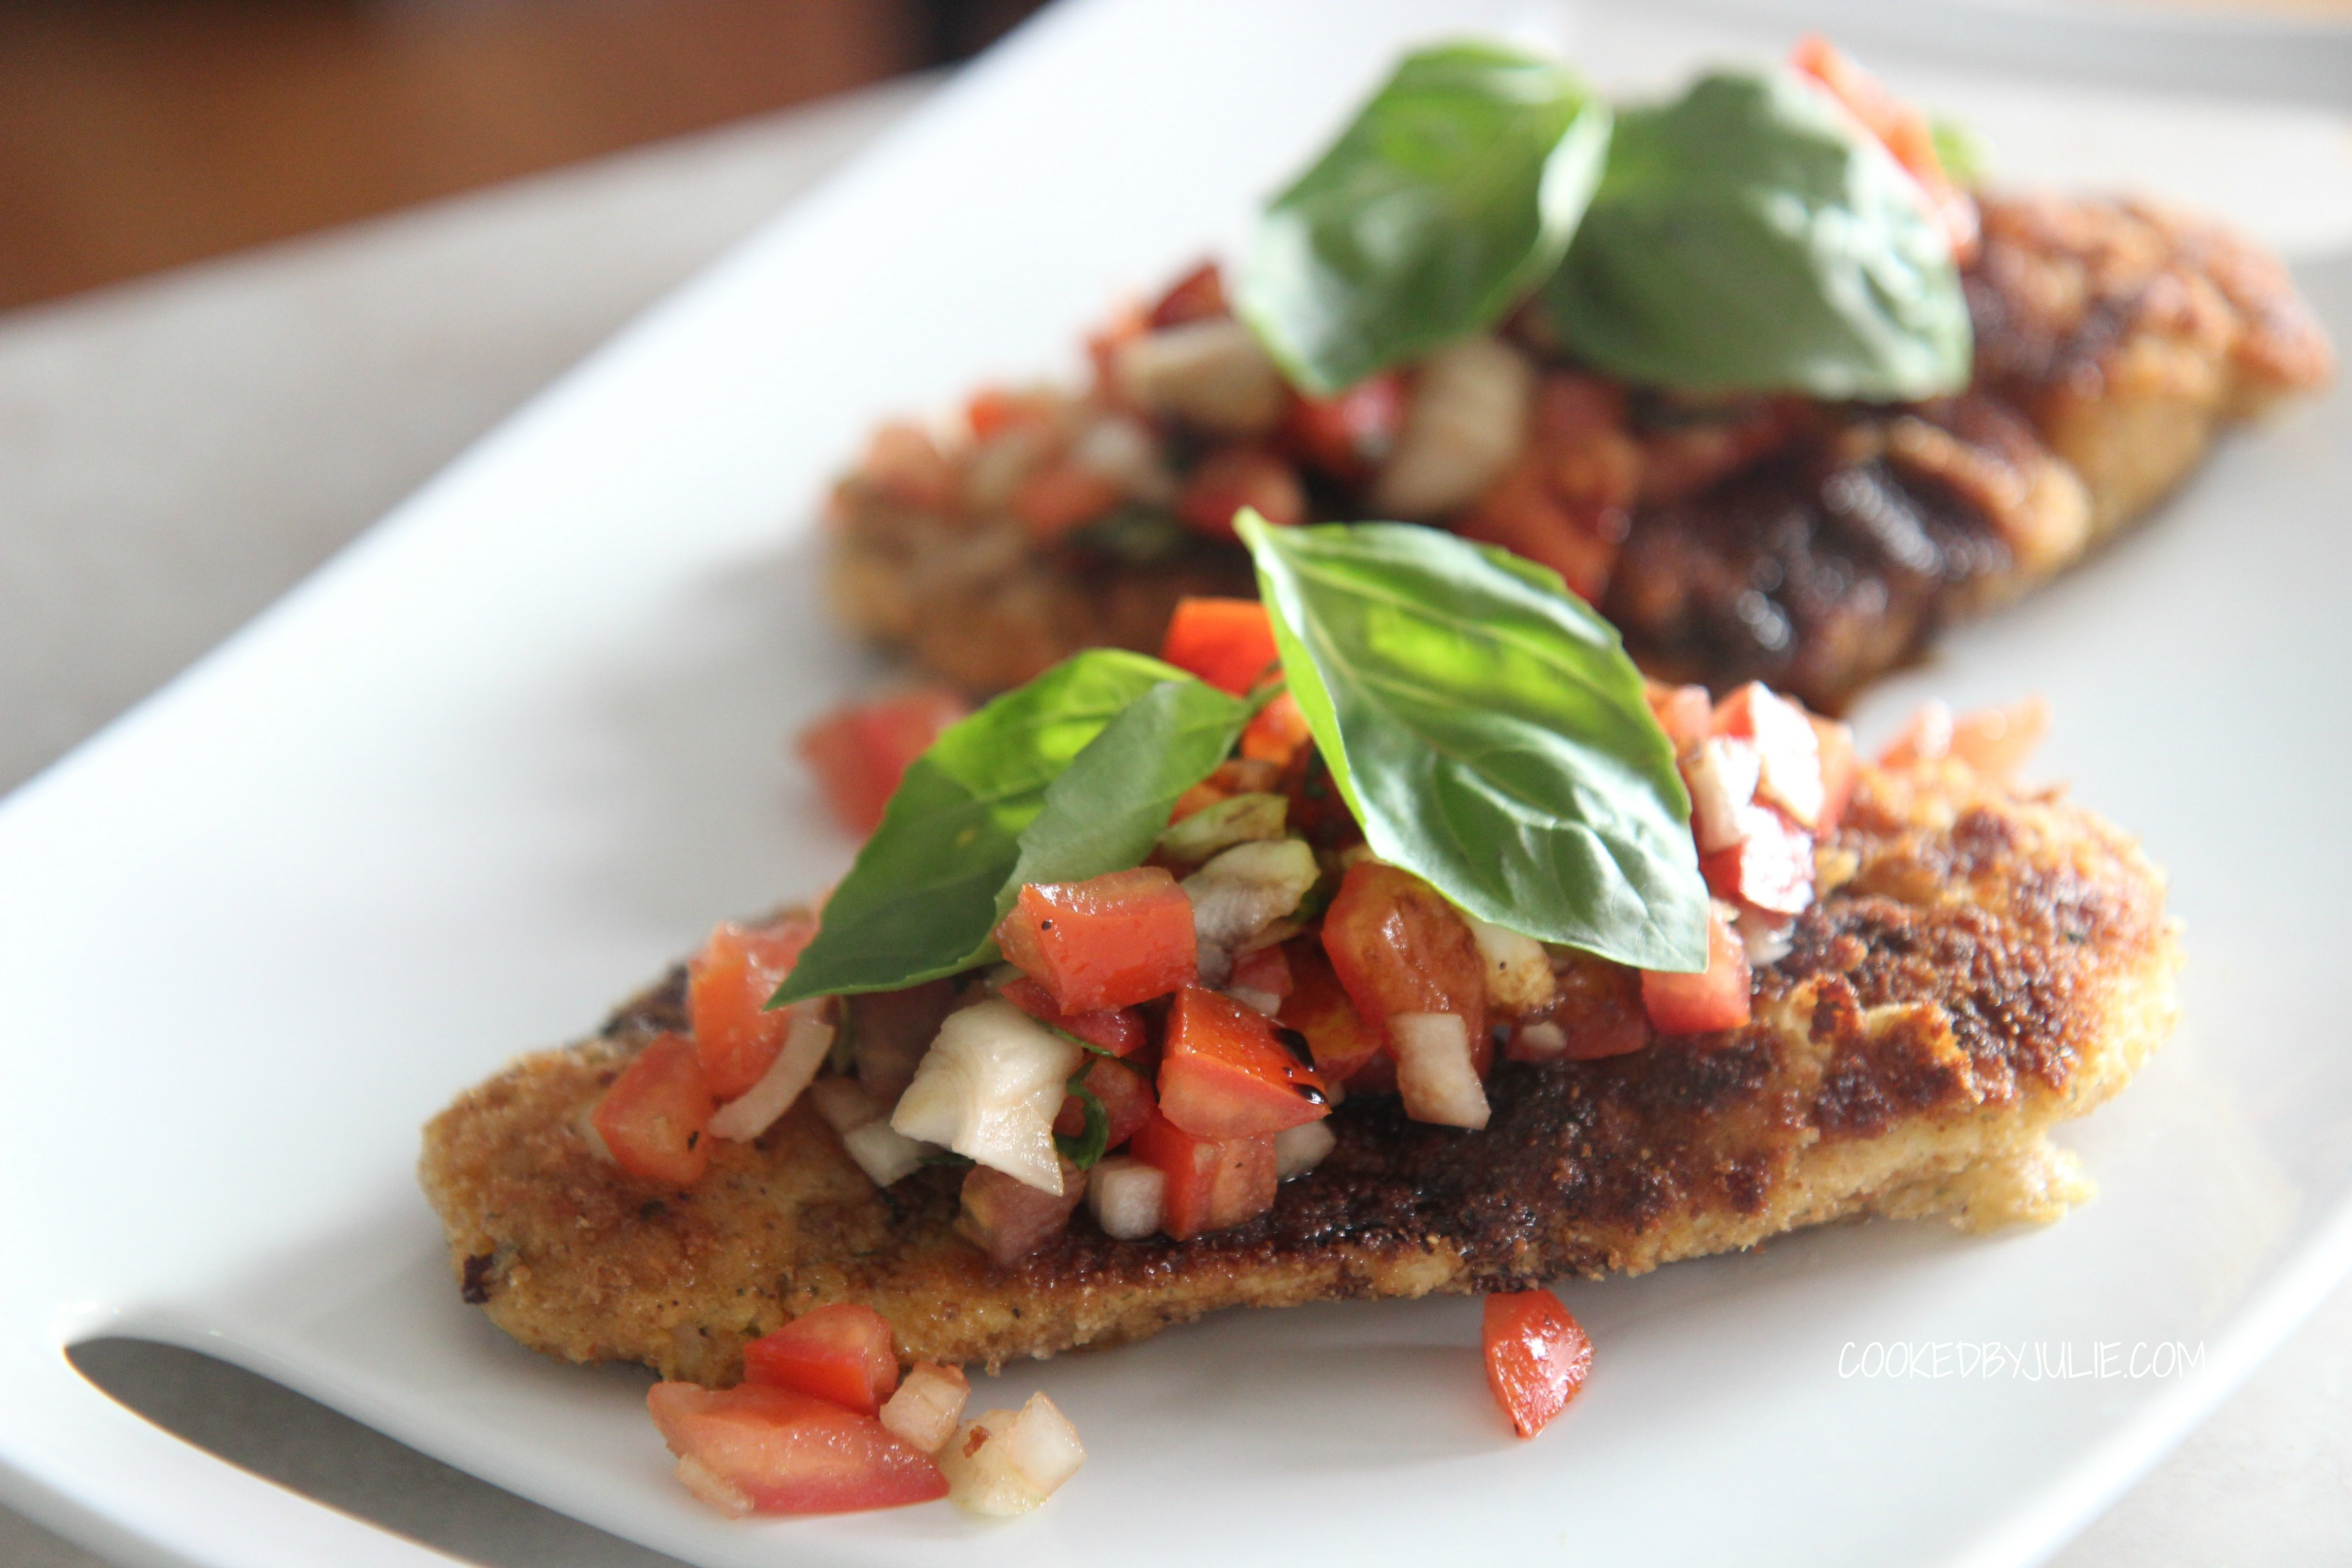 Topped with fresh basil leaves and a fresh tomato mixture, this chicken bruschetta is light and delicious.